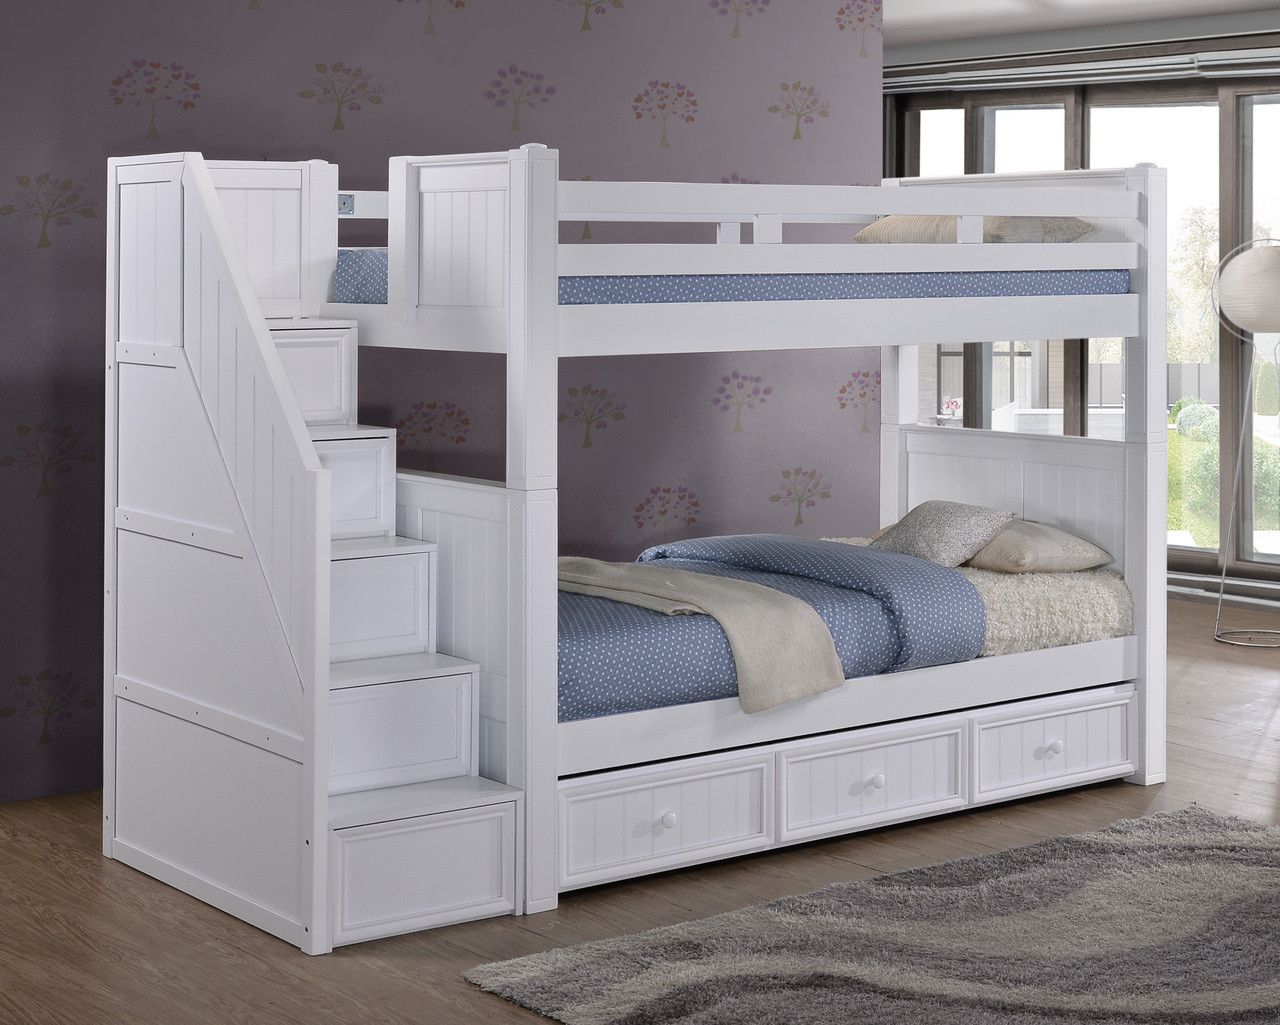 Picture of: Bunk Bed Stairs With Drawers